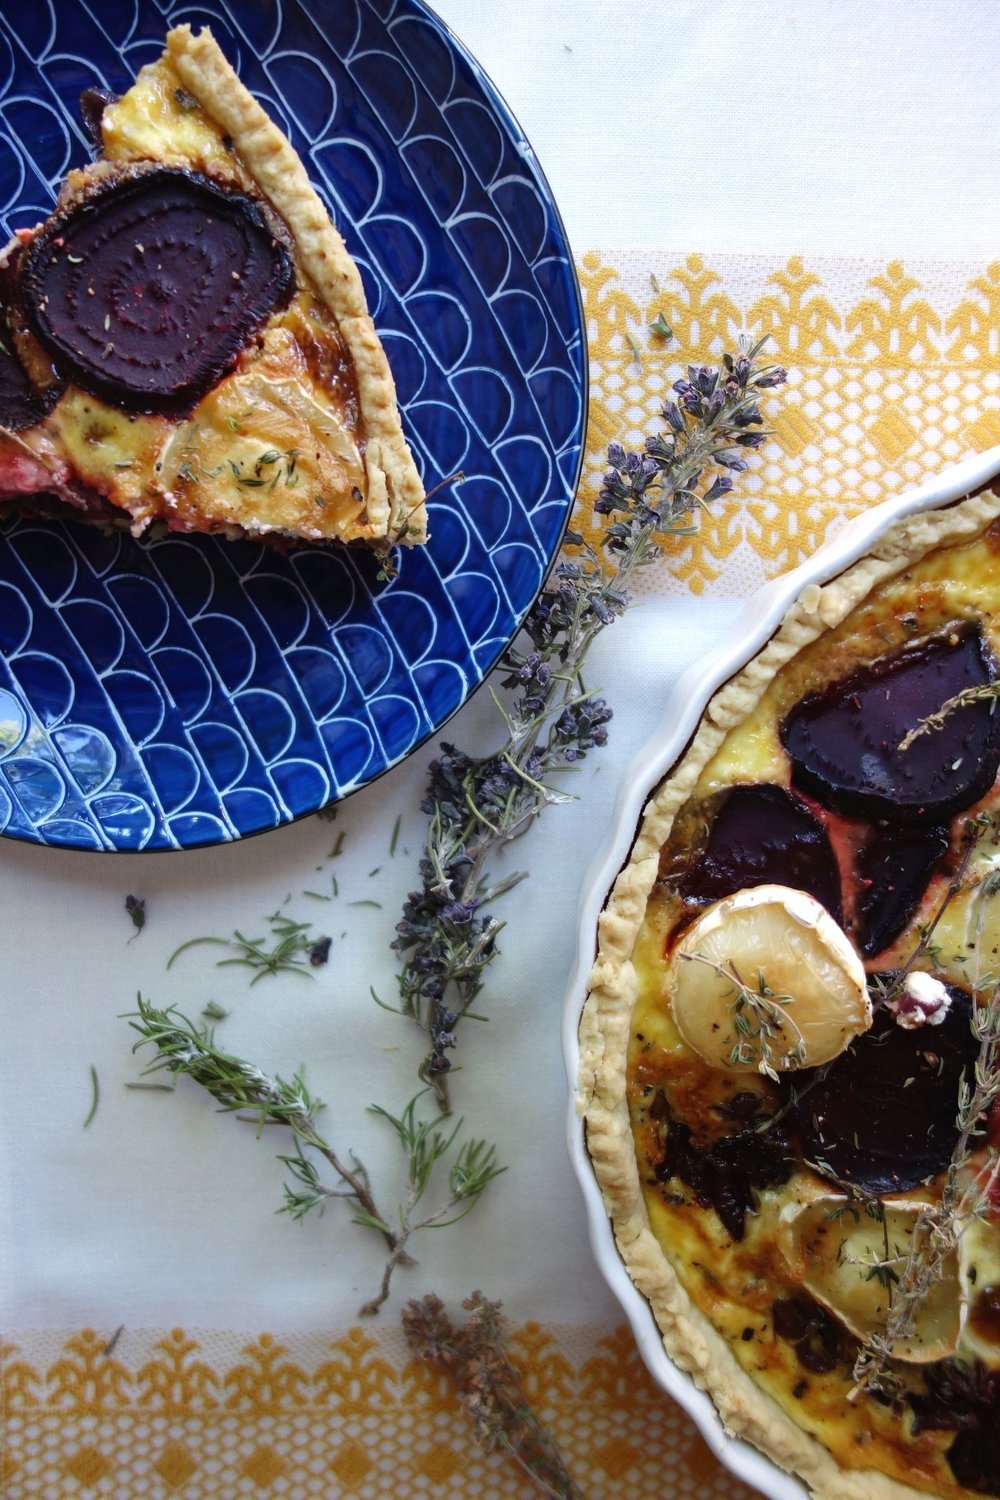 Beetroot and goat cheese tart.